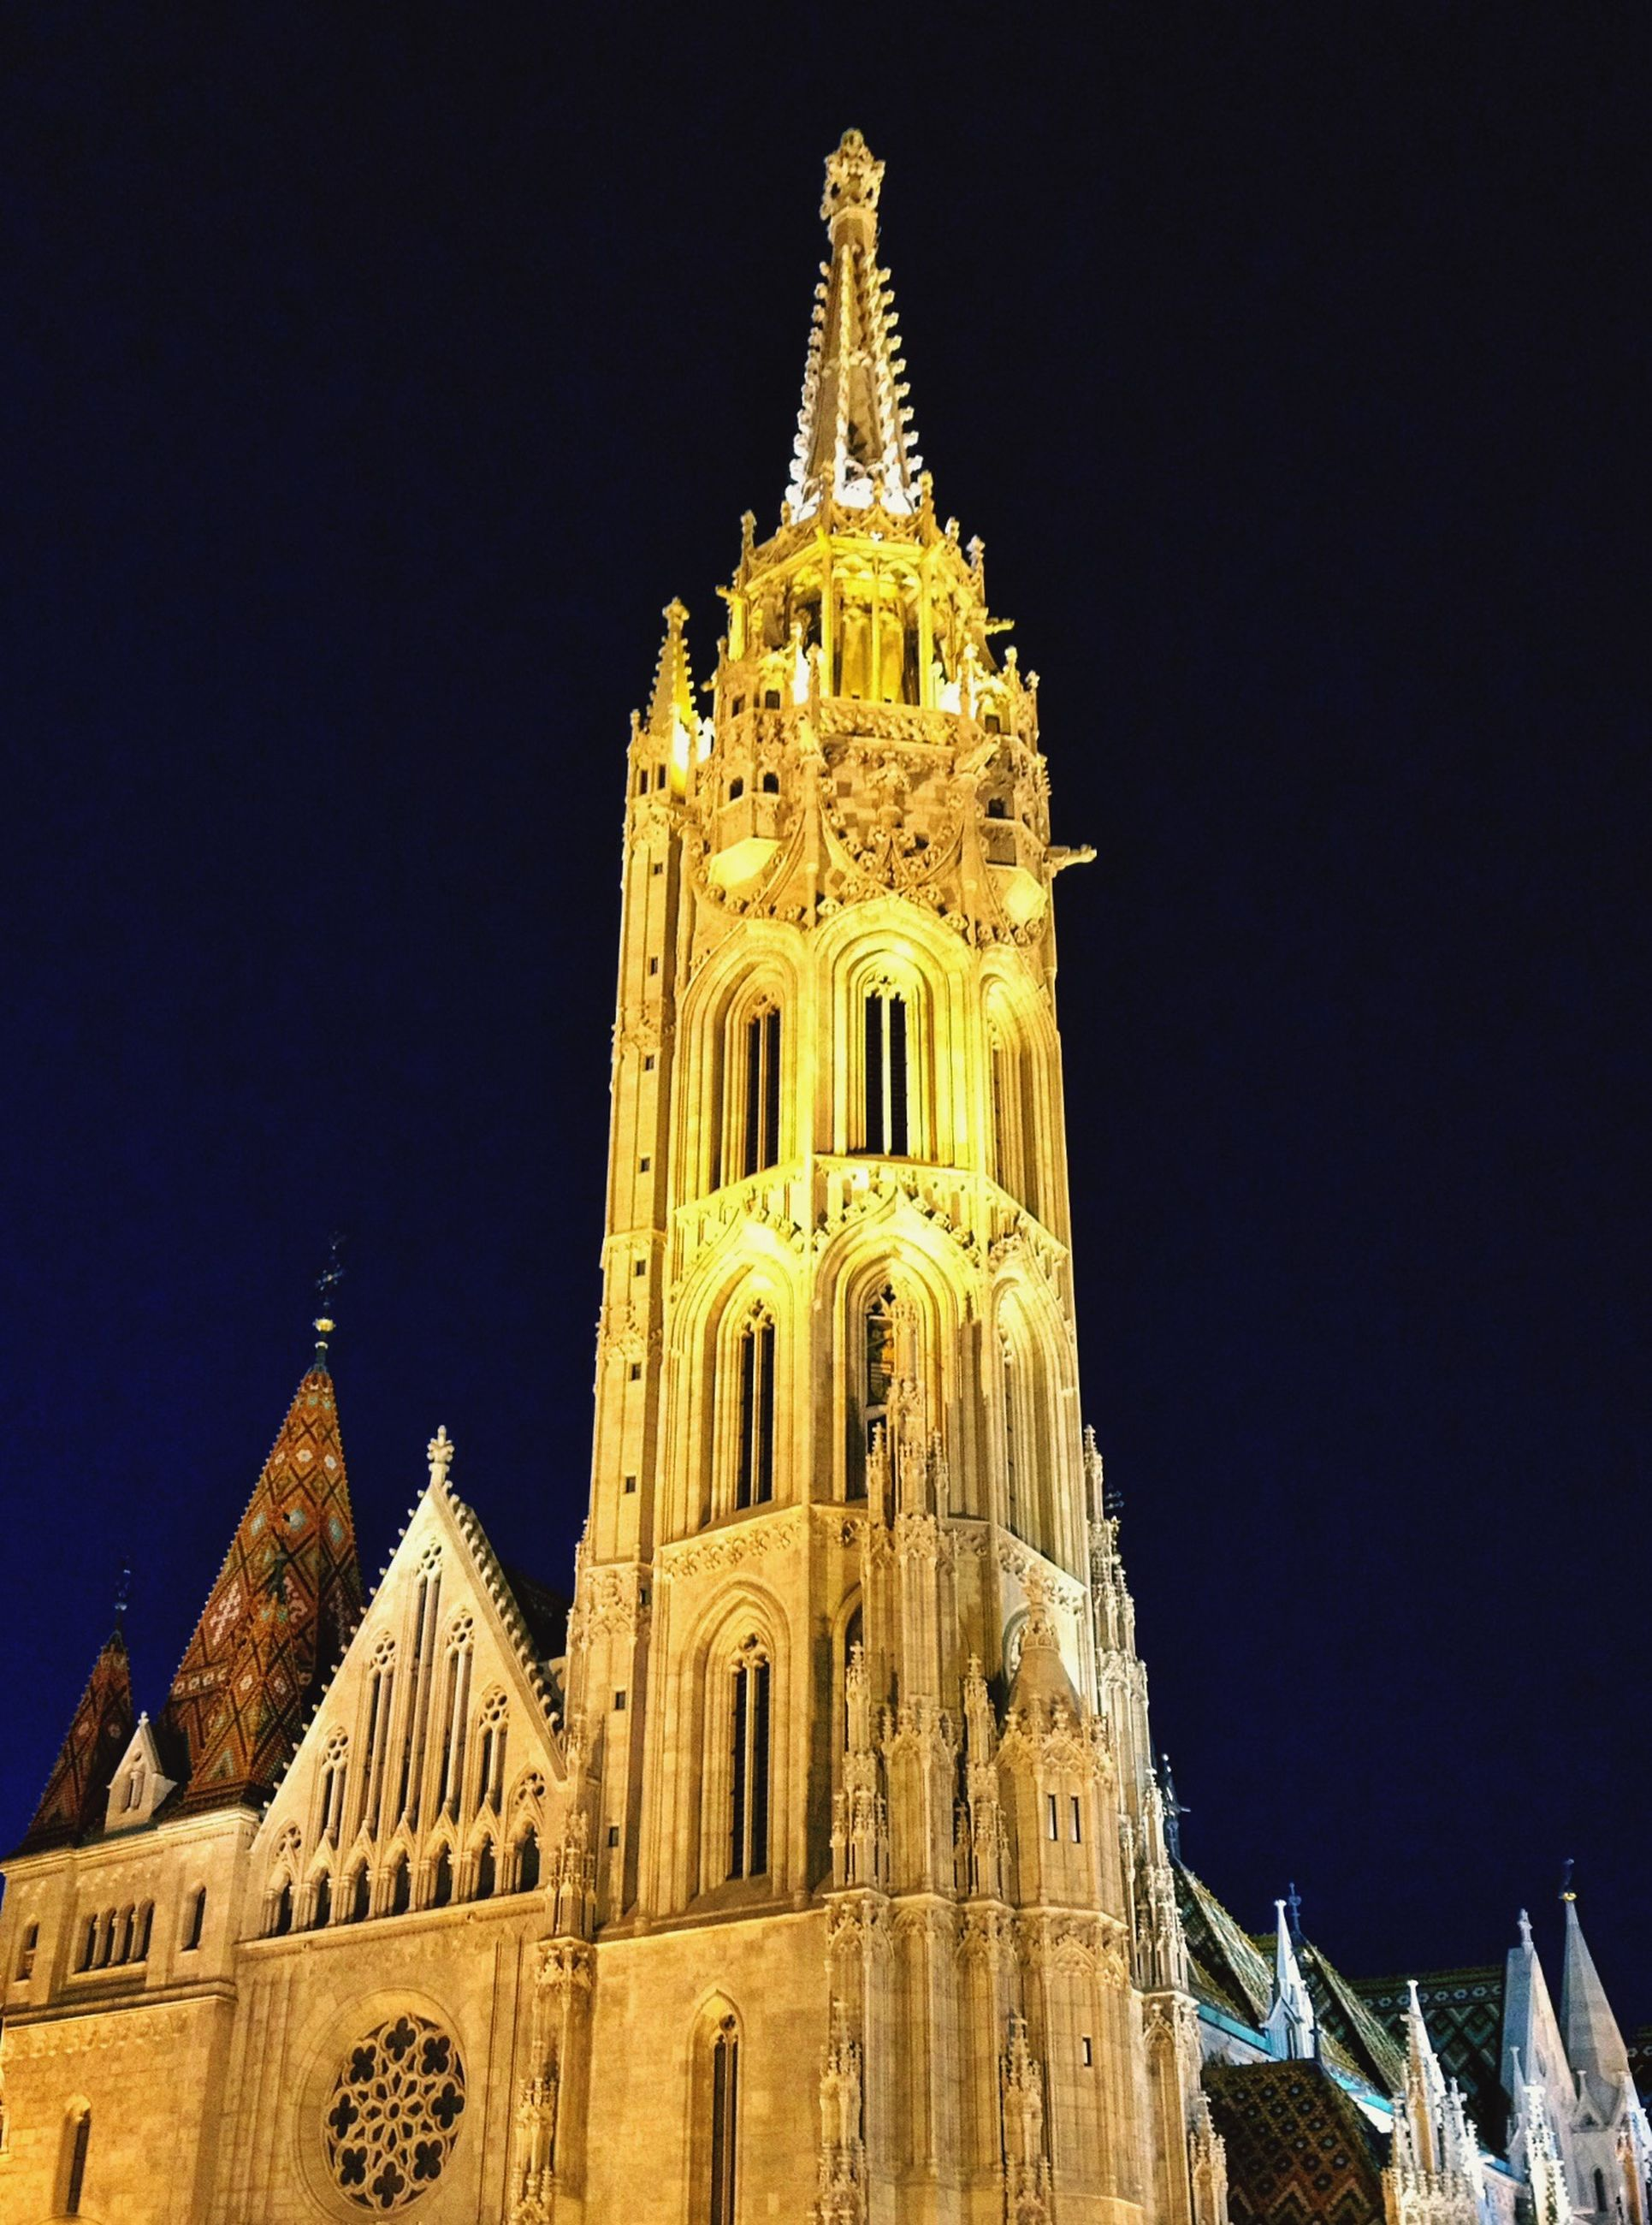 low angle view, architecture, religion, place of worship, building exterior, built structure, spirituality, famous place, travel destinations, clear sky, international landmark, travel, night, tourism, cathedral, church, capital cities, blue, illuminated